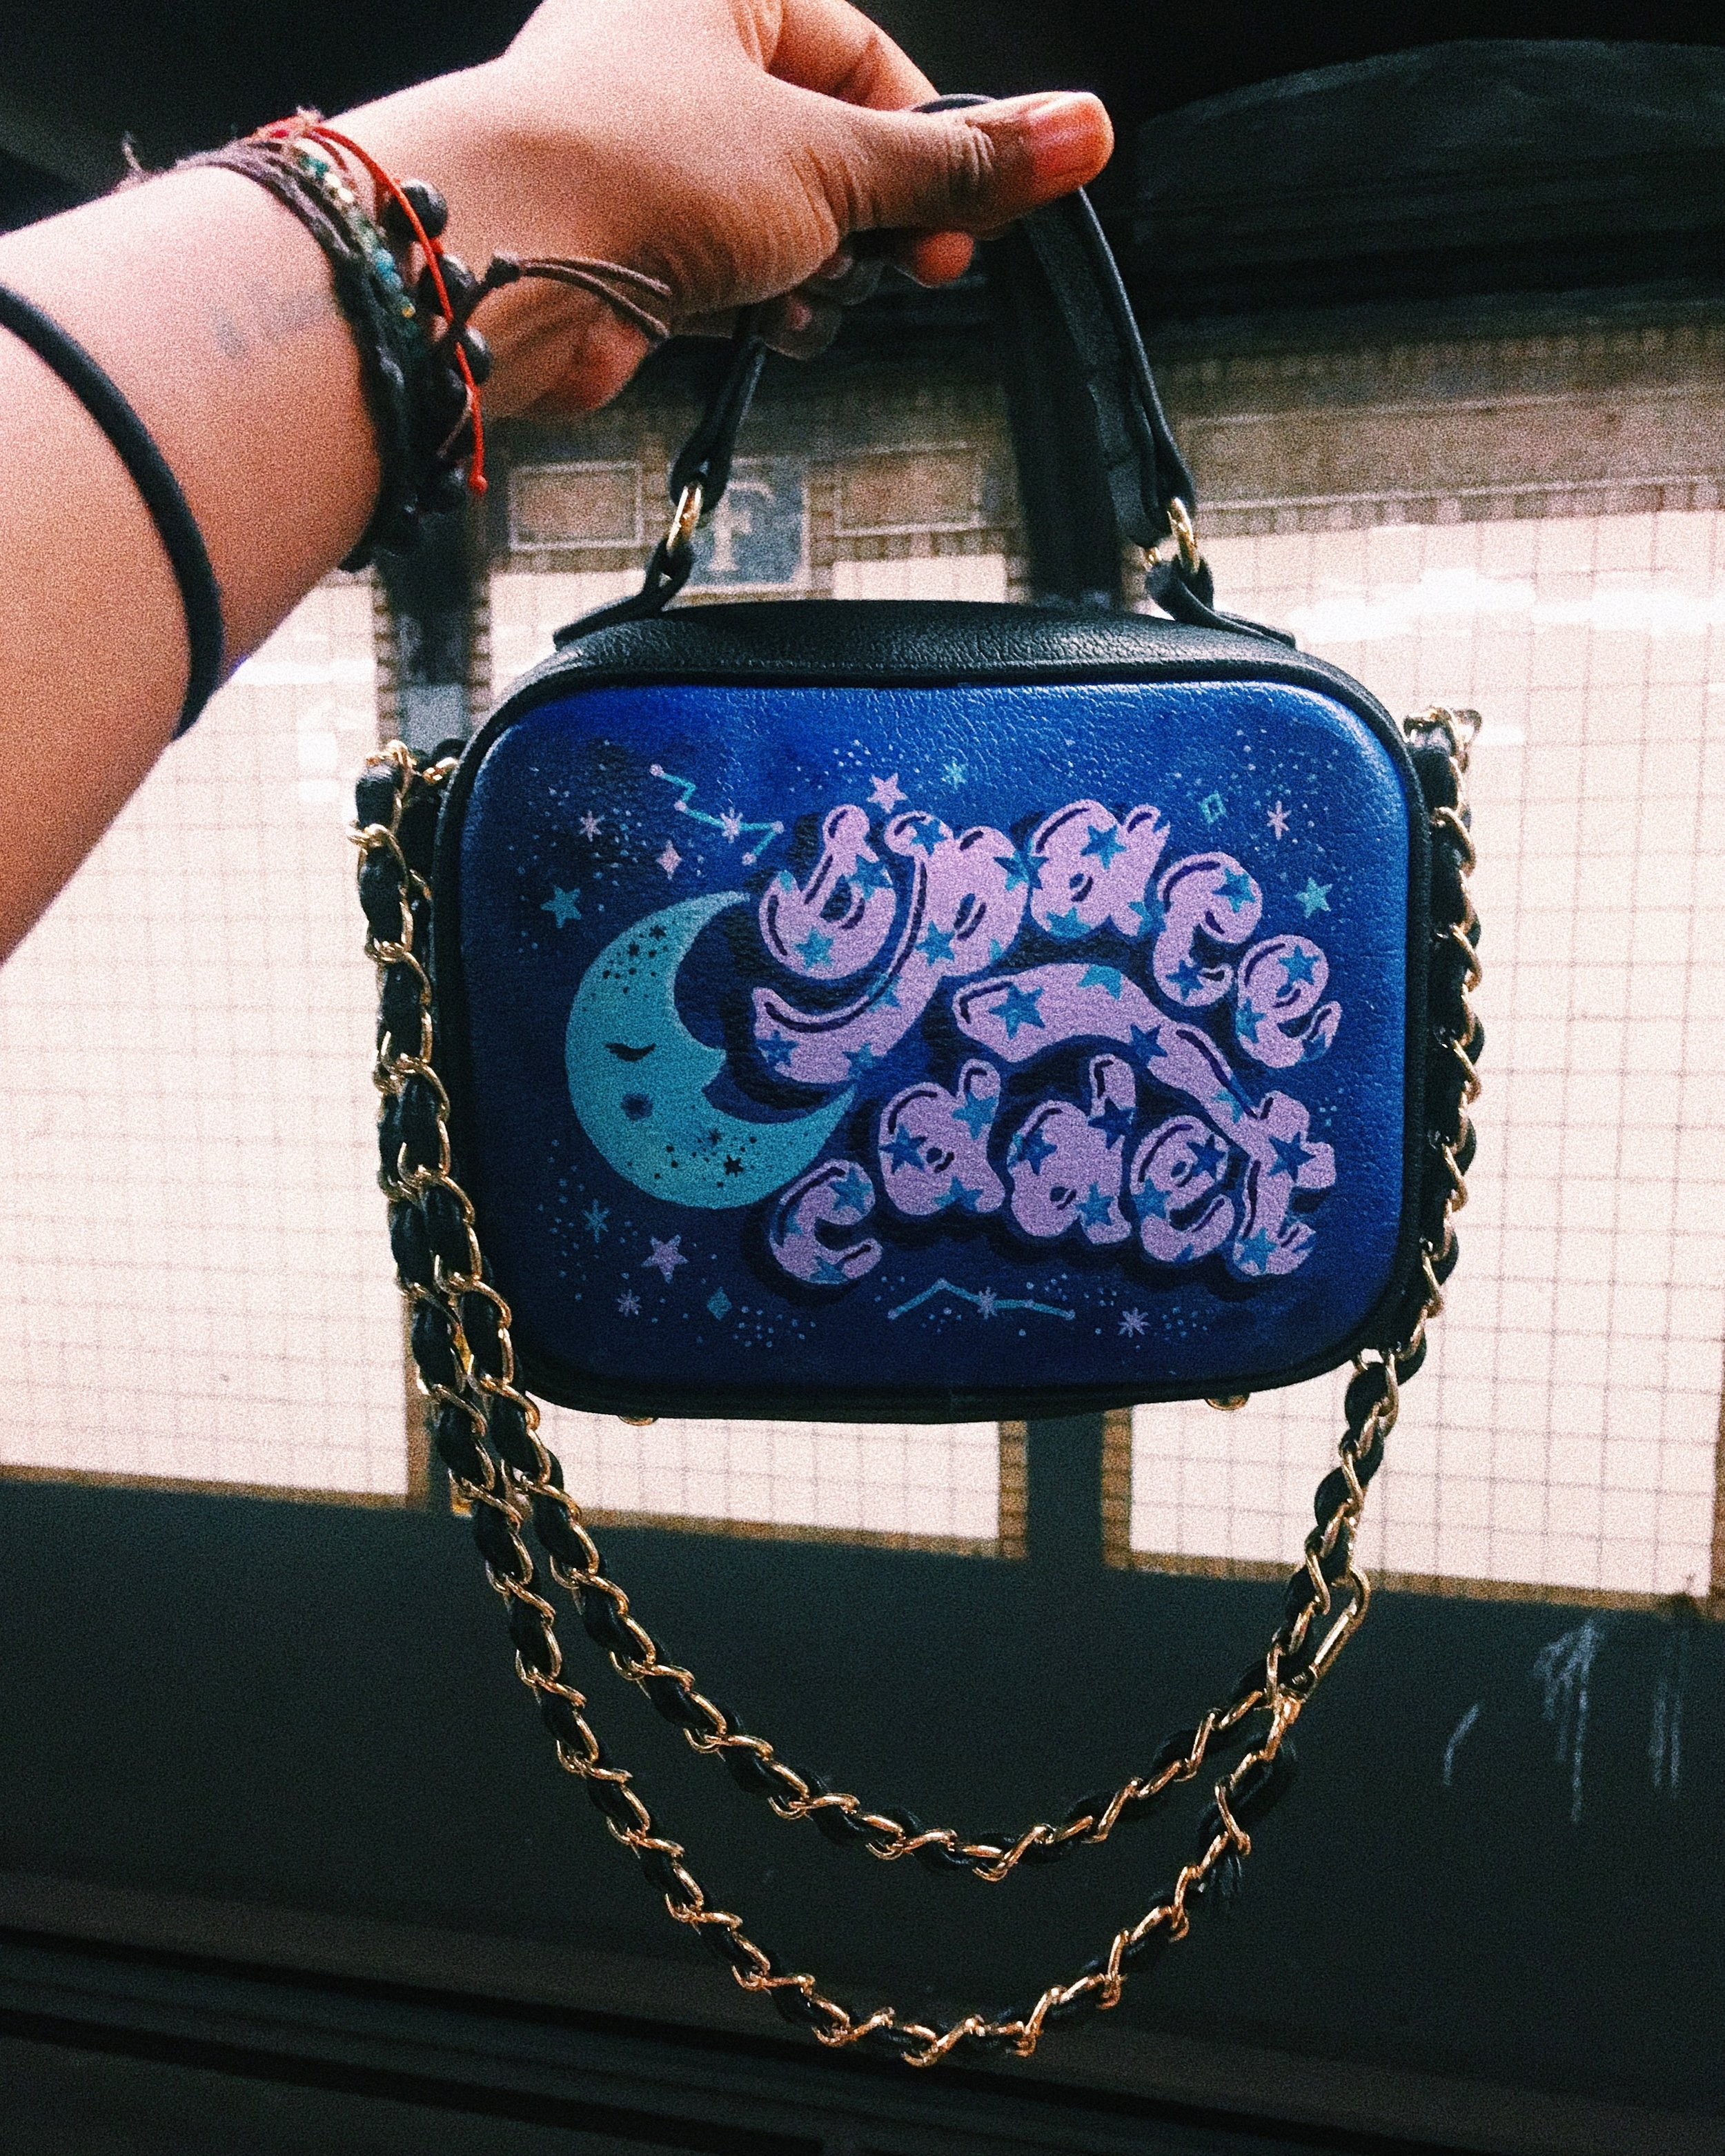 painted space cadet purse  - 2/3 bags I customized for 3 babes KILLING their side hustle. Check out Naika's insta + website!